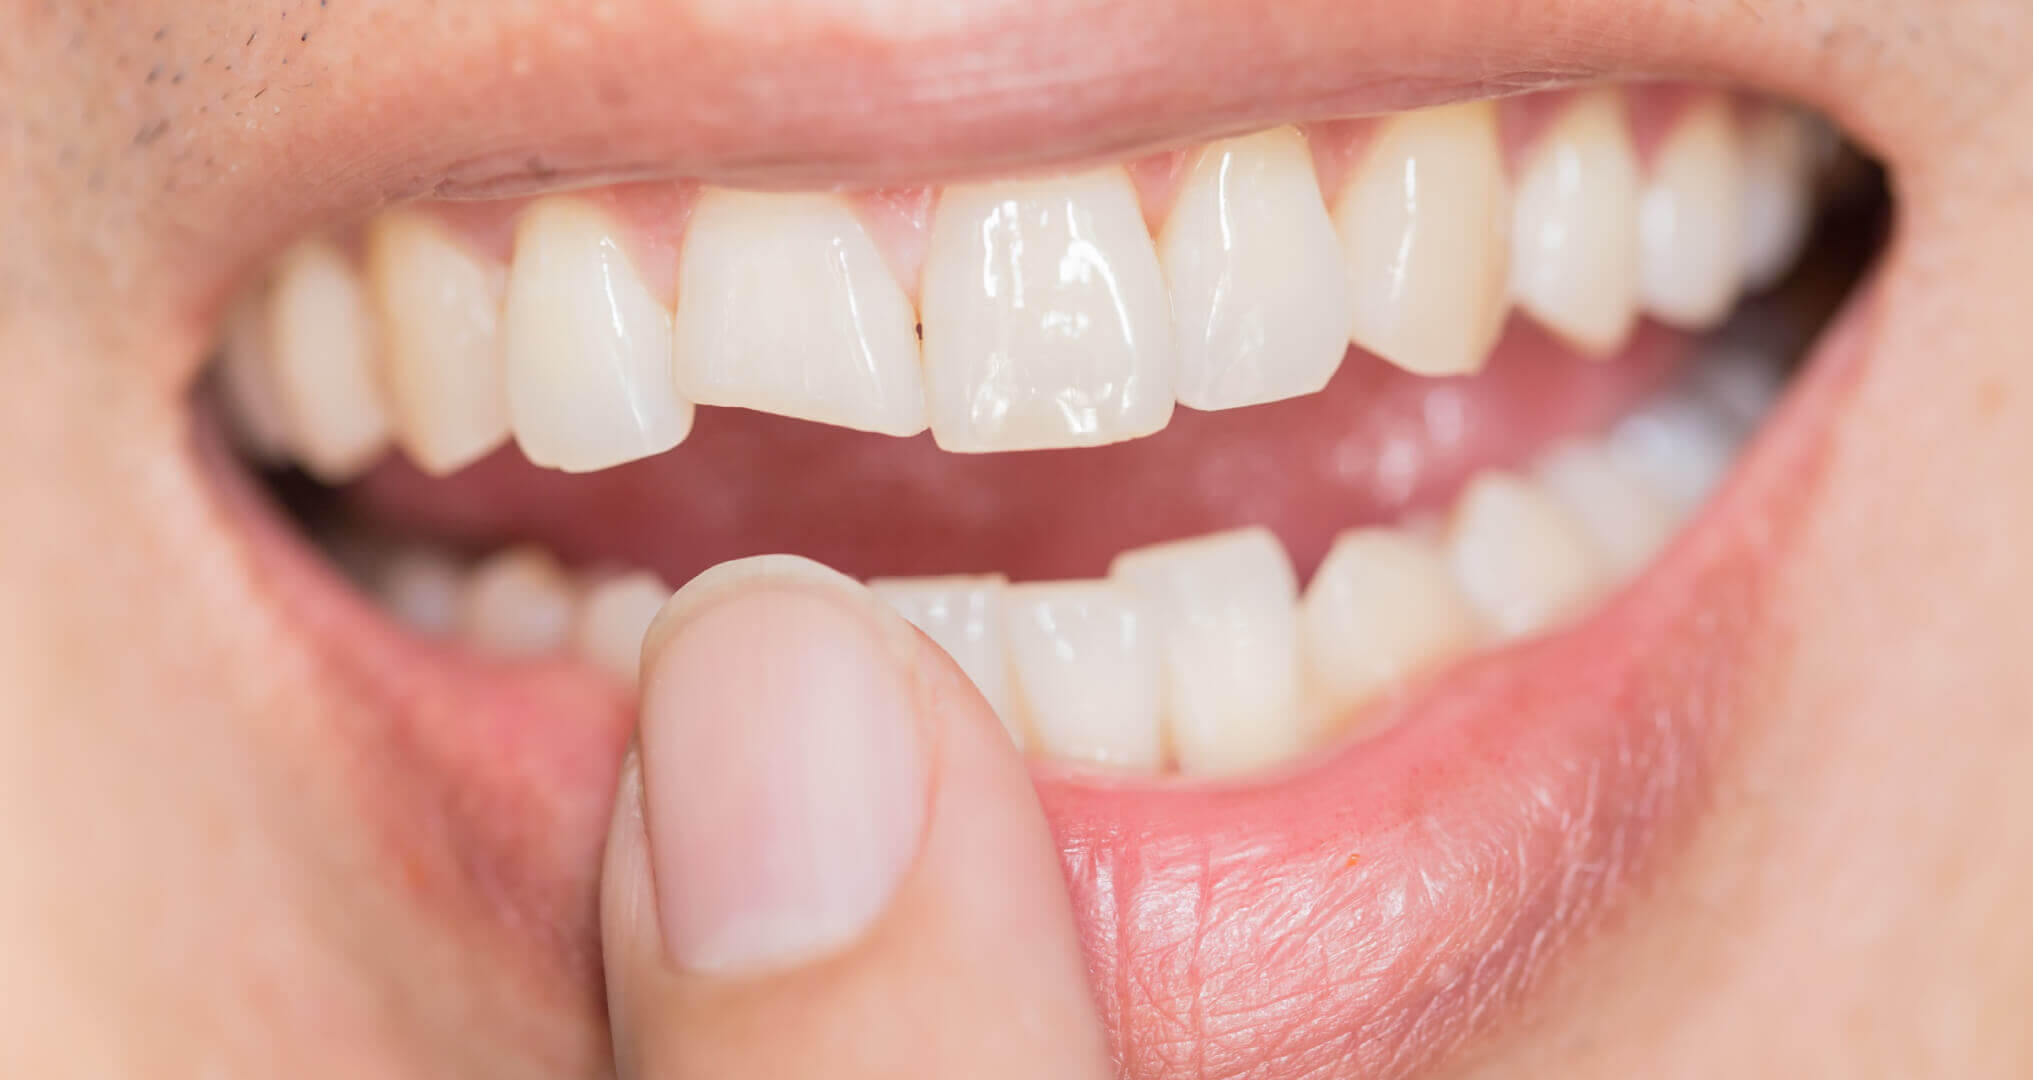 How To Fix A Broken Tooth At Home Advanced Dental Care Of Anderson